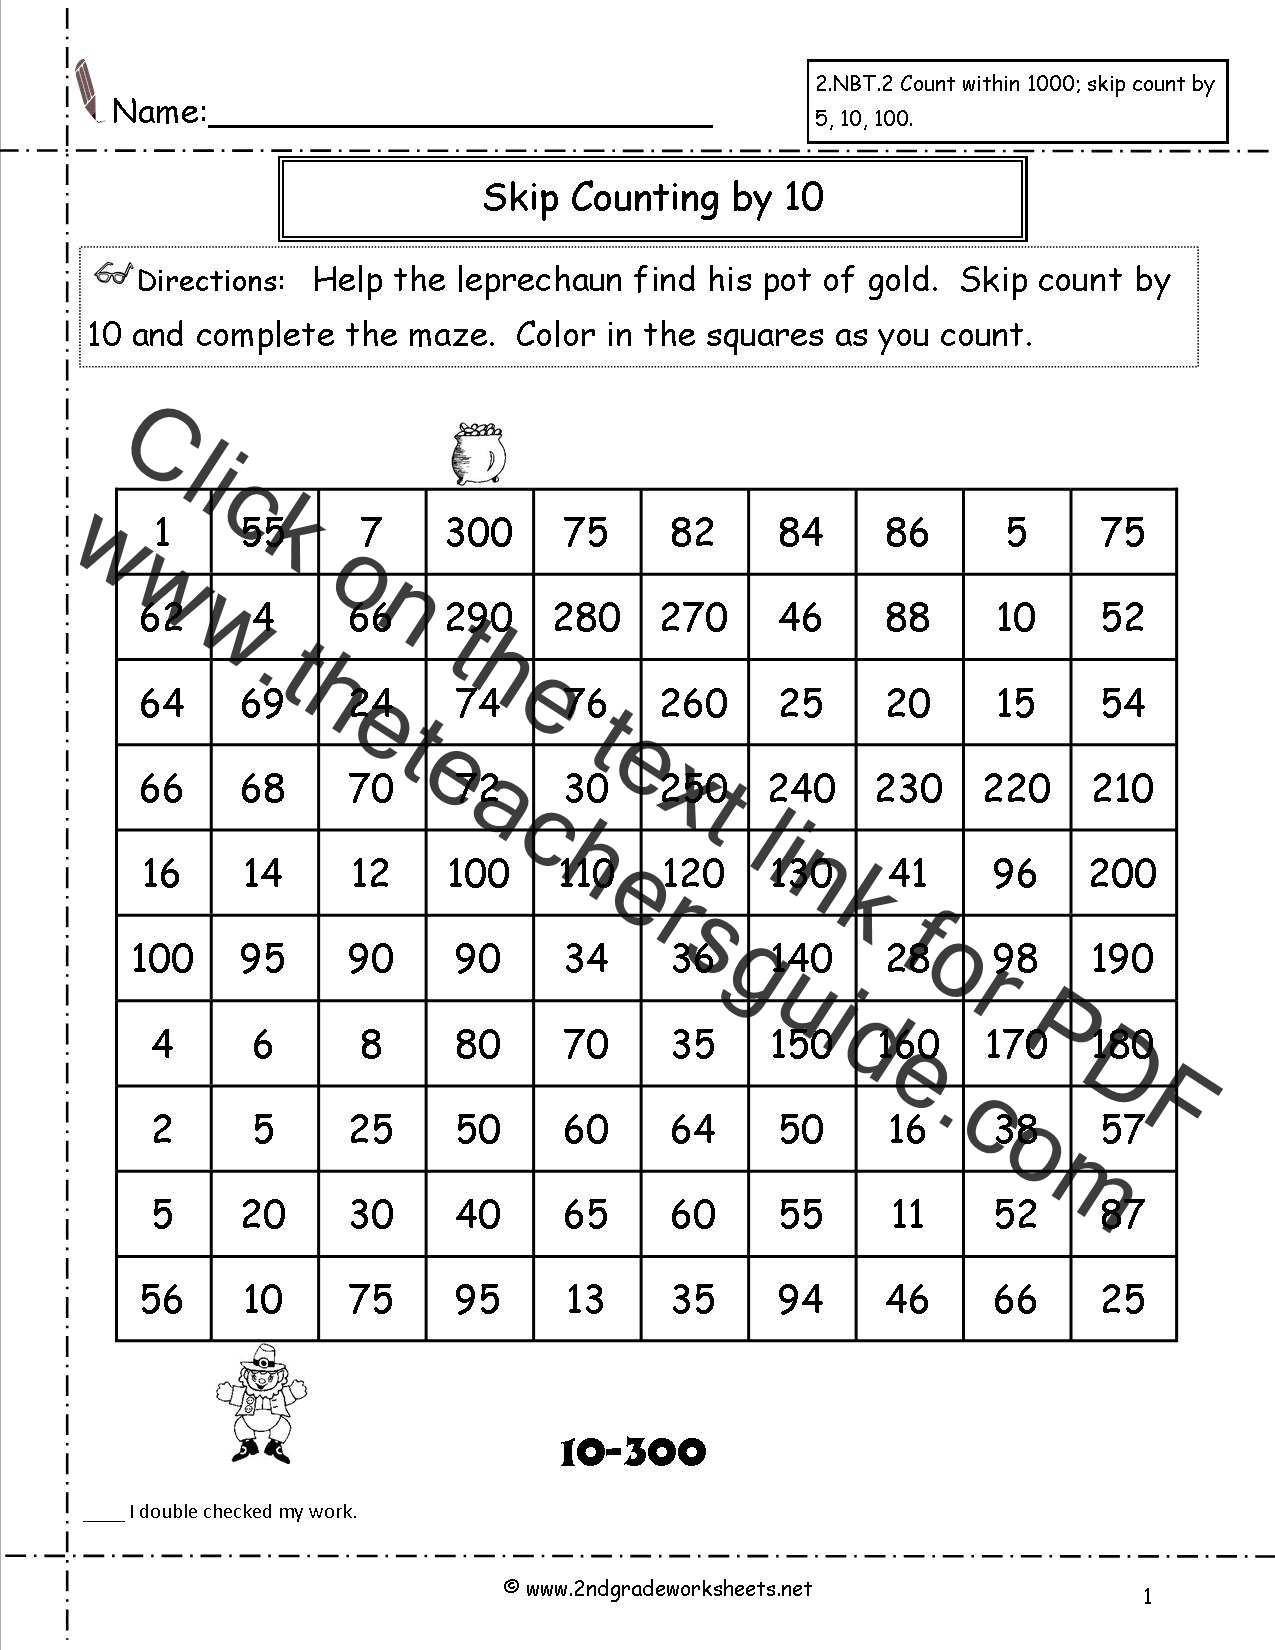 Worksheets Free Skip Counting Worksheets free skip counting worksheets count by 10 maze